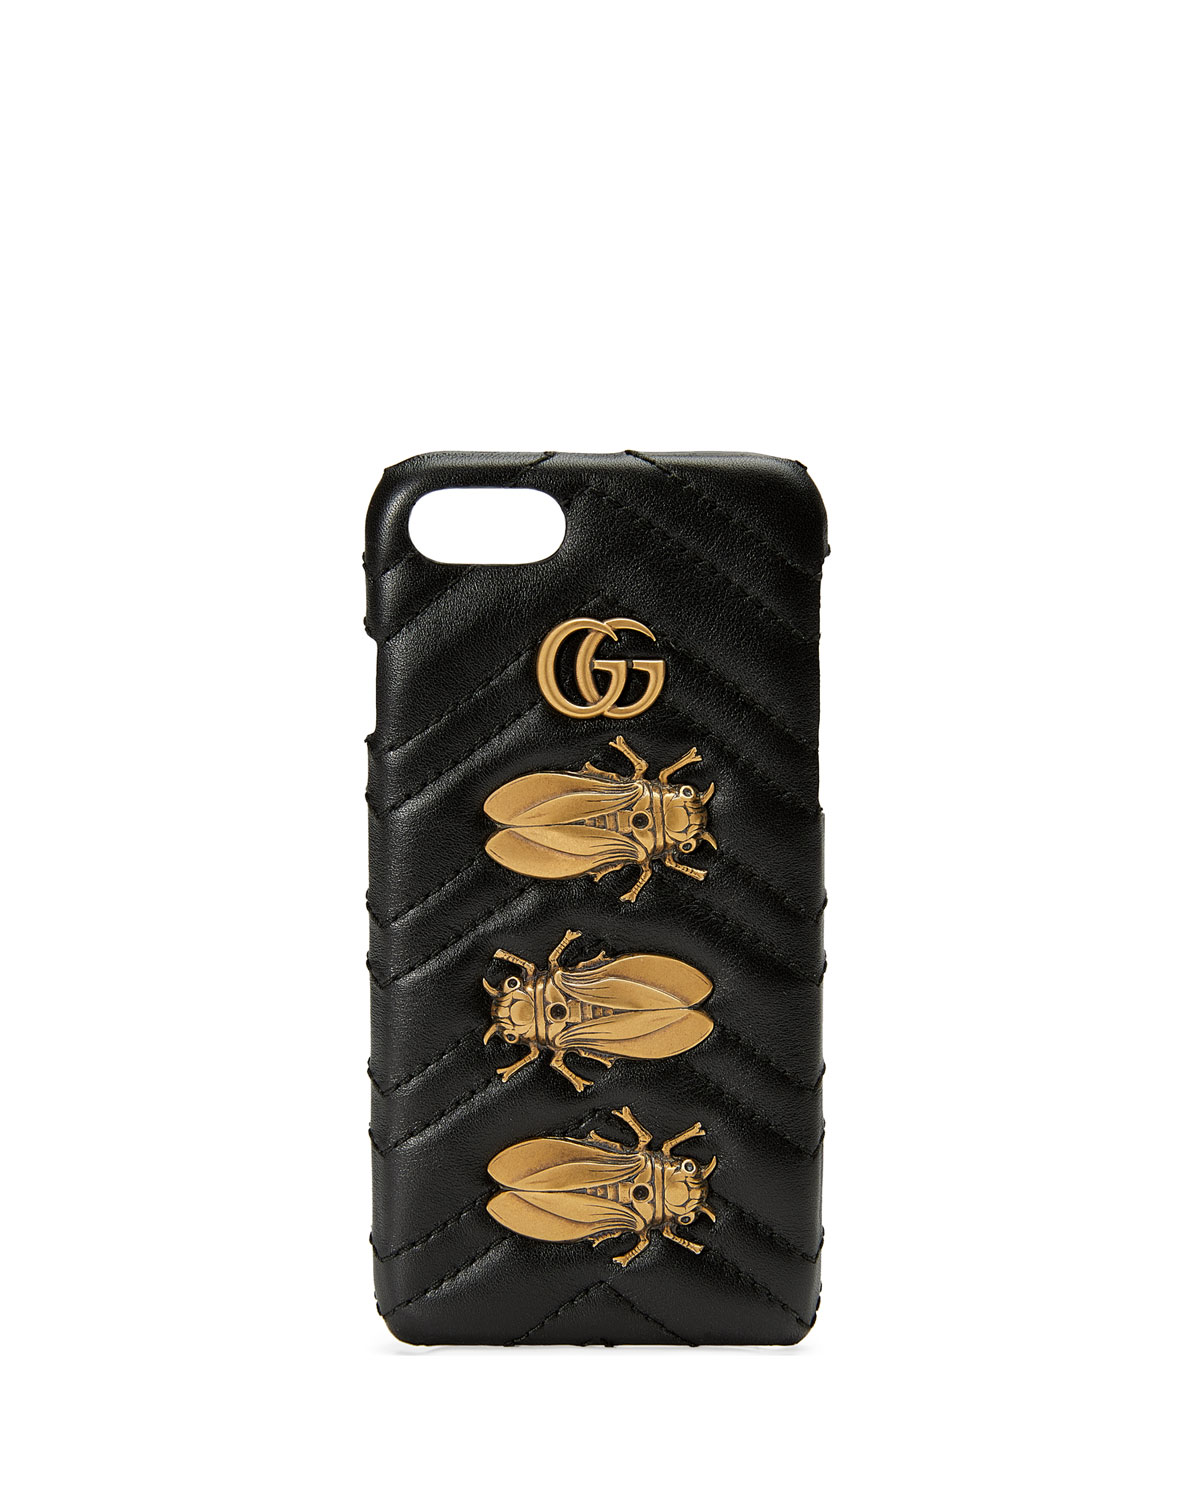 29114a4498a Gucci Matelassé Leather Moth iPhone 7 Case